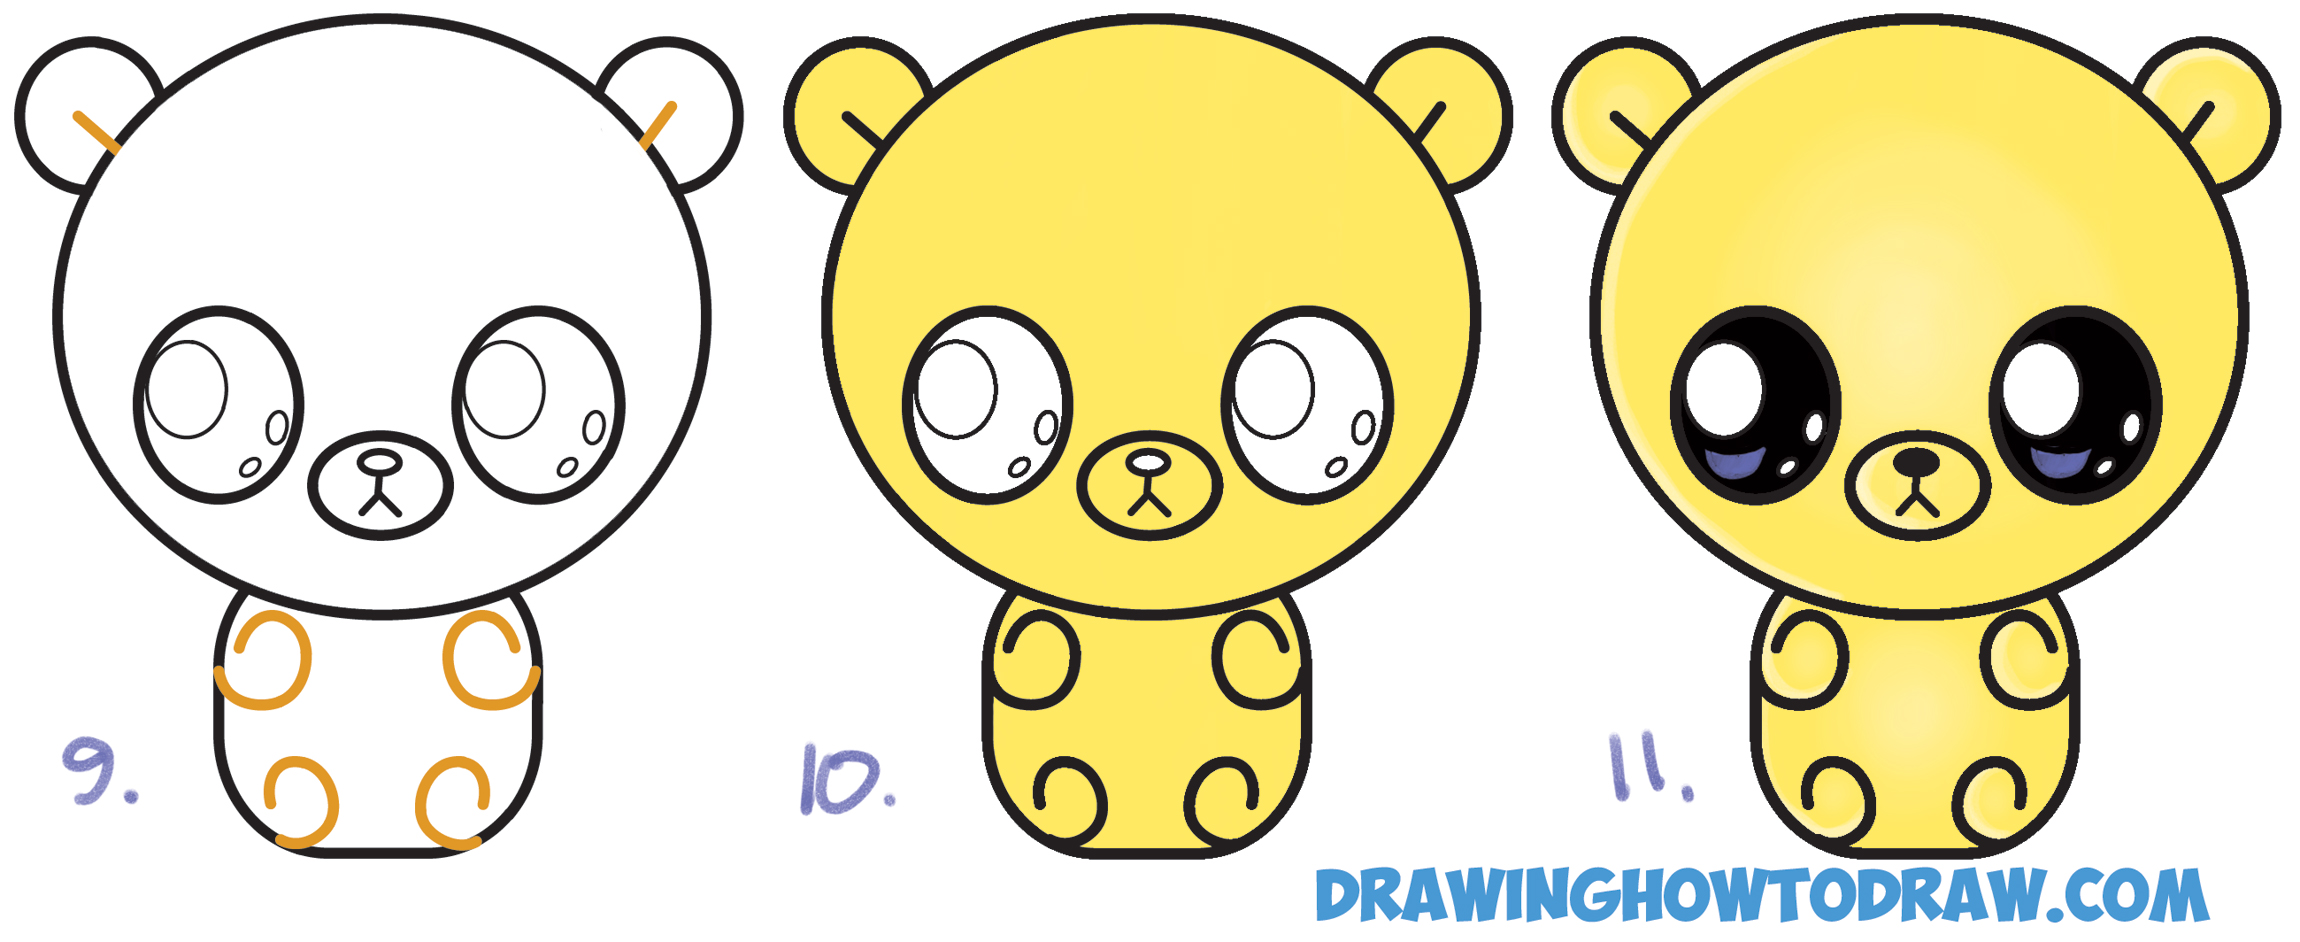 Uncategorized How To Draw A Bear For Kids how to draw a cute chibi kawaii cartoon gummy bear easy step learn simple steps drawing